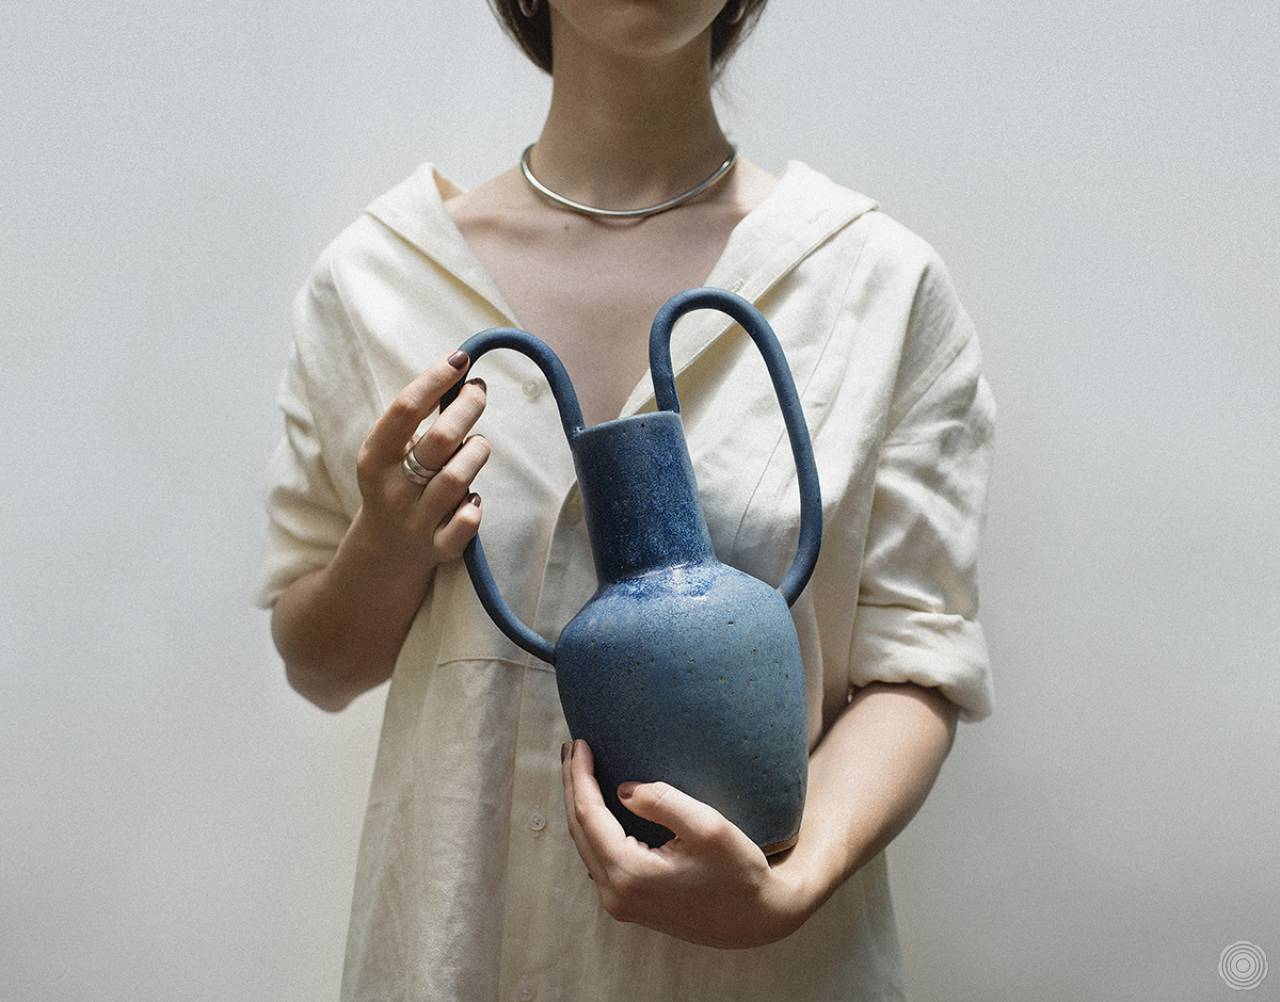 Classical-Meets-Contemporary Ceramics by Nicolette Johnson